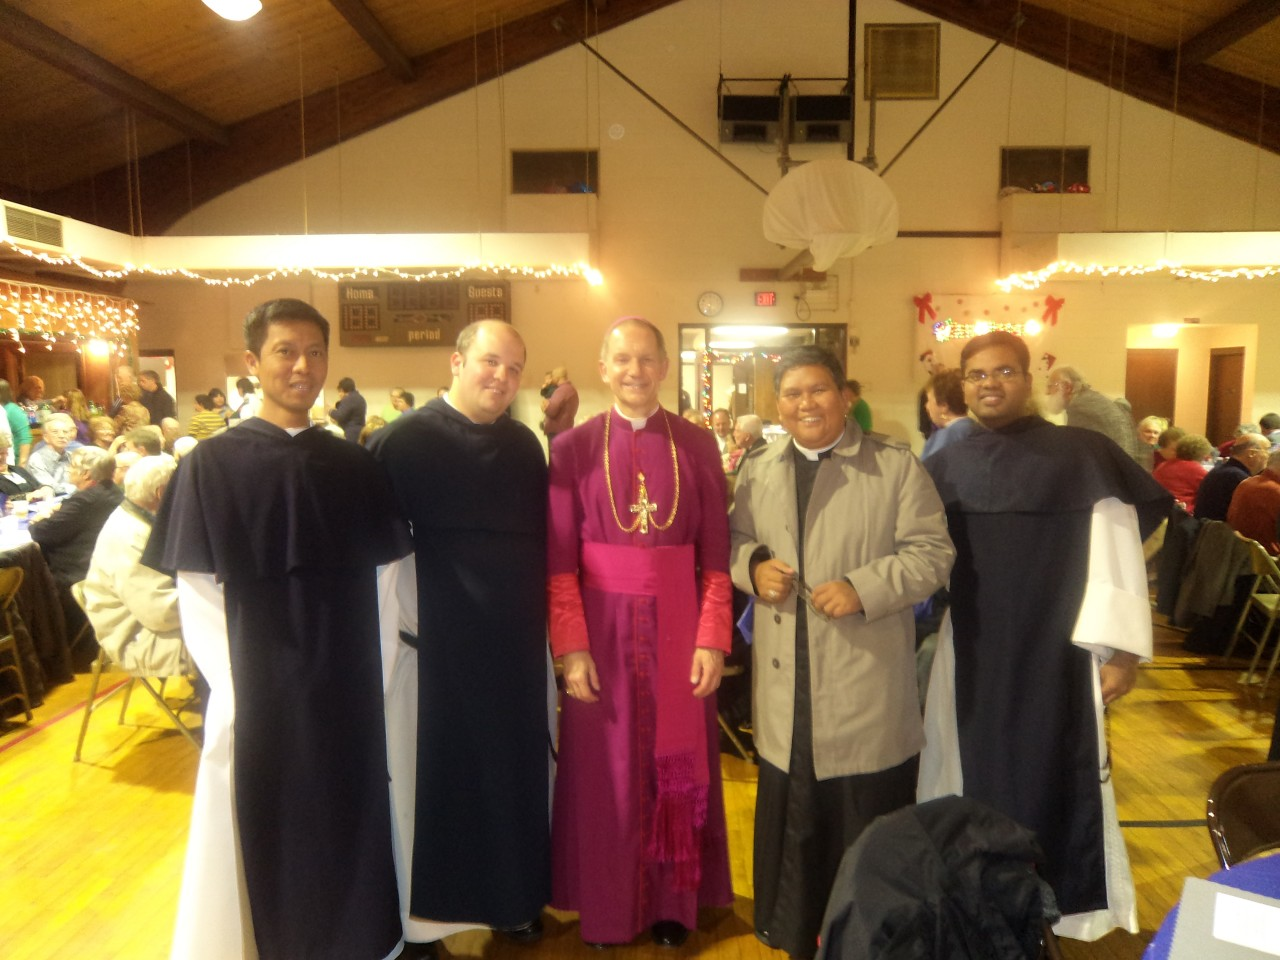 Fr. Abe with Bishop Thomas Pafrocki of the Diocese of Springfield, Illinois